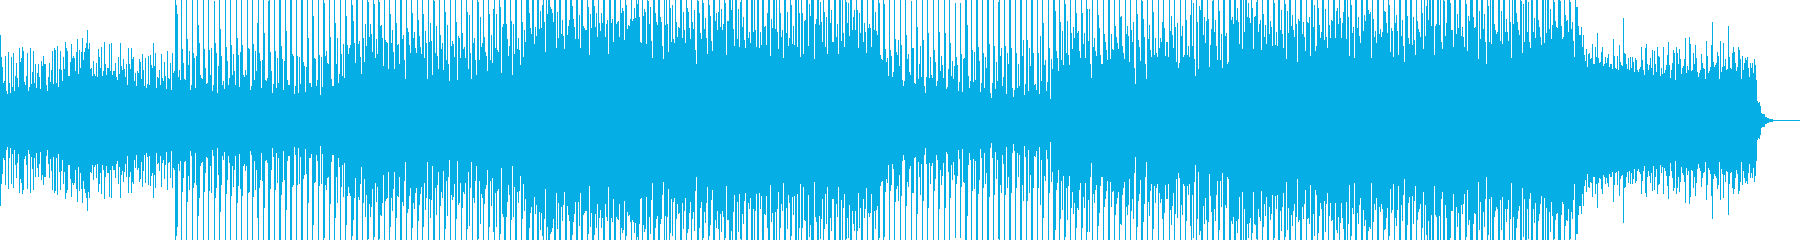 EDM club dance music-22's reproduced waveform